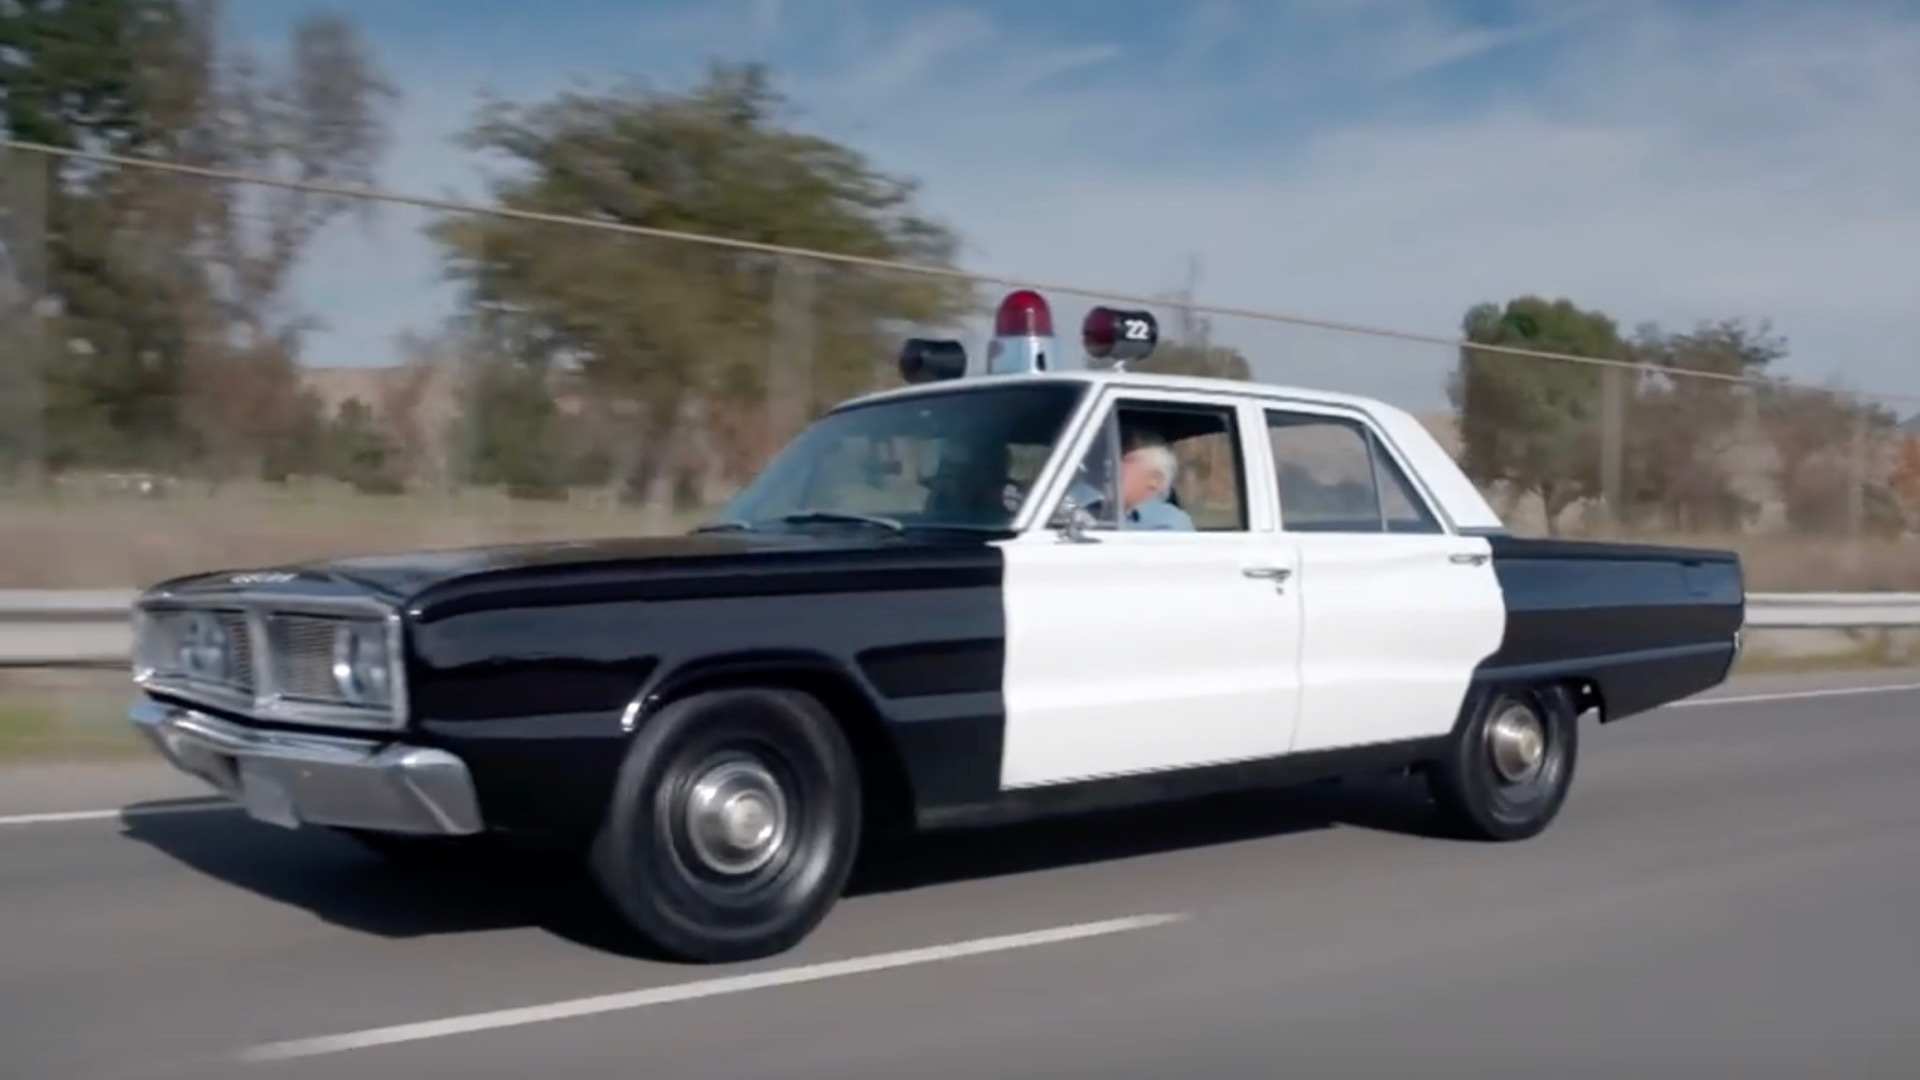 1966 Dodge Coronet police car Jay Leno's Garage screenshot